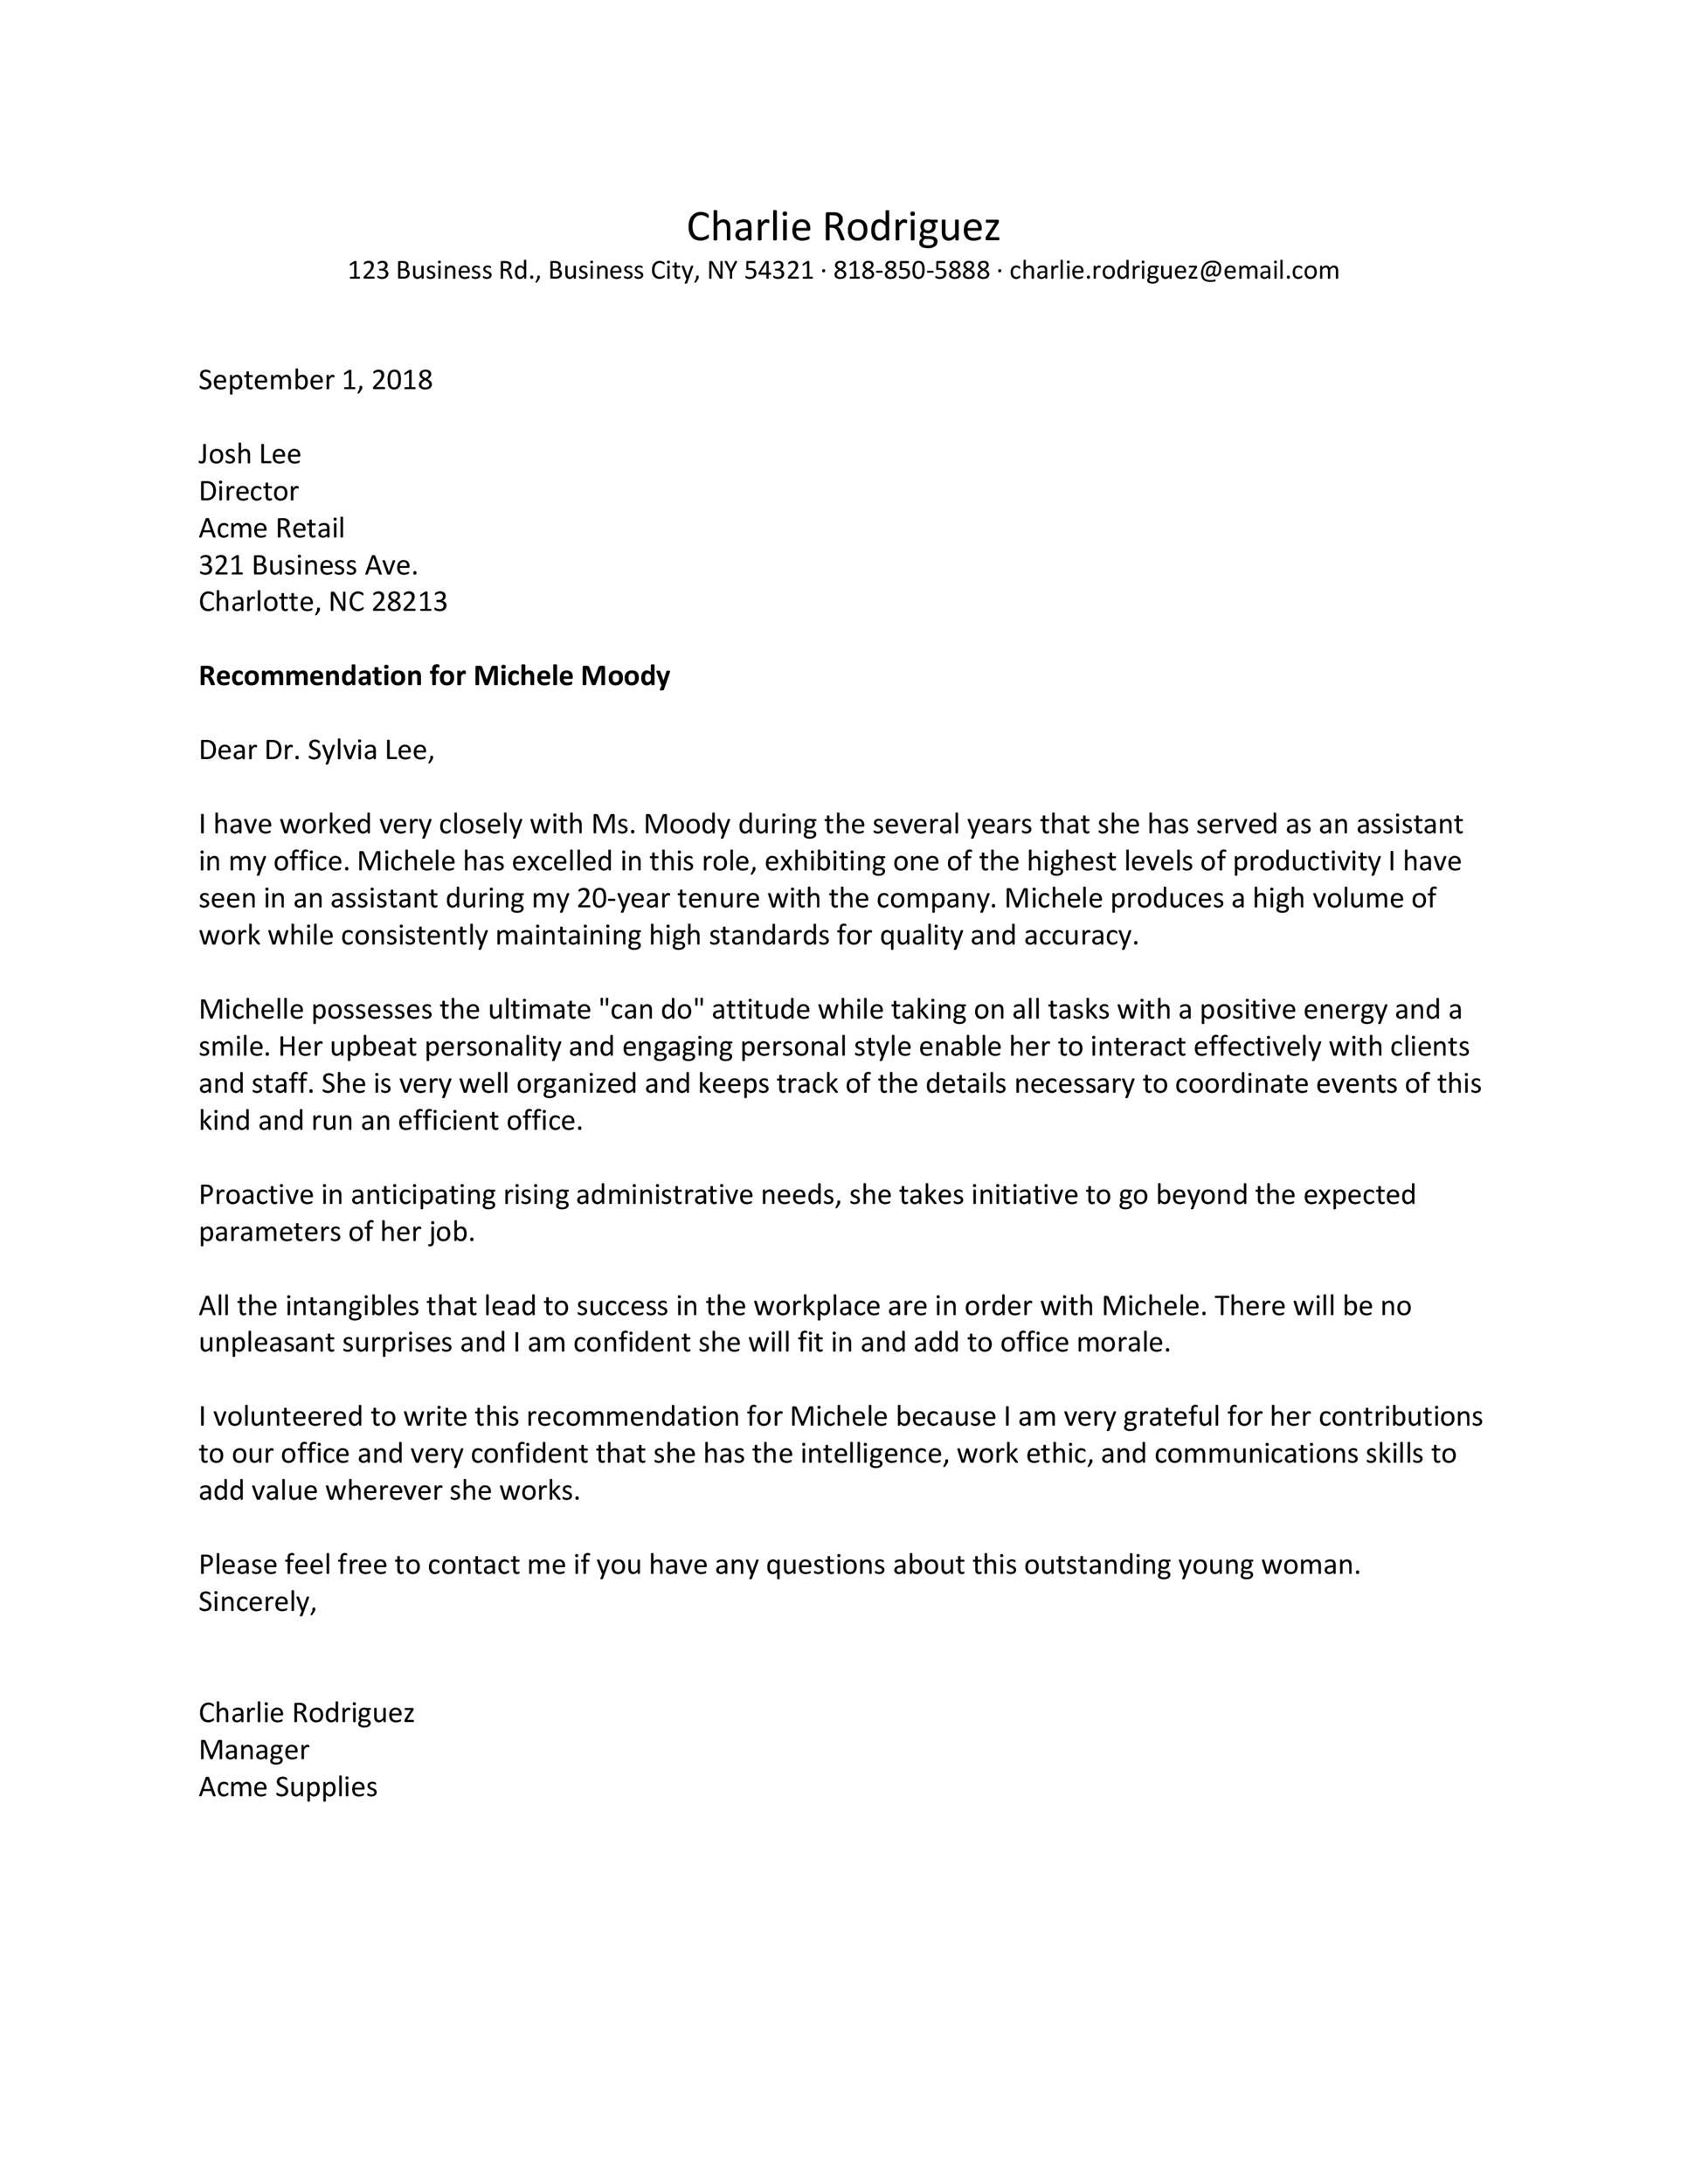 006 Wondrou Personal Letter Of Recommendation Template High Resolution  Templates Character Reference WordFull